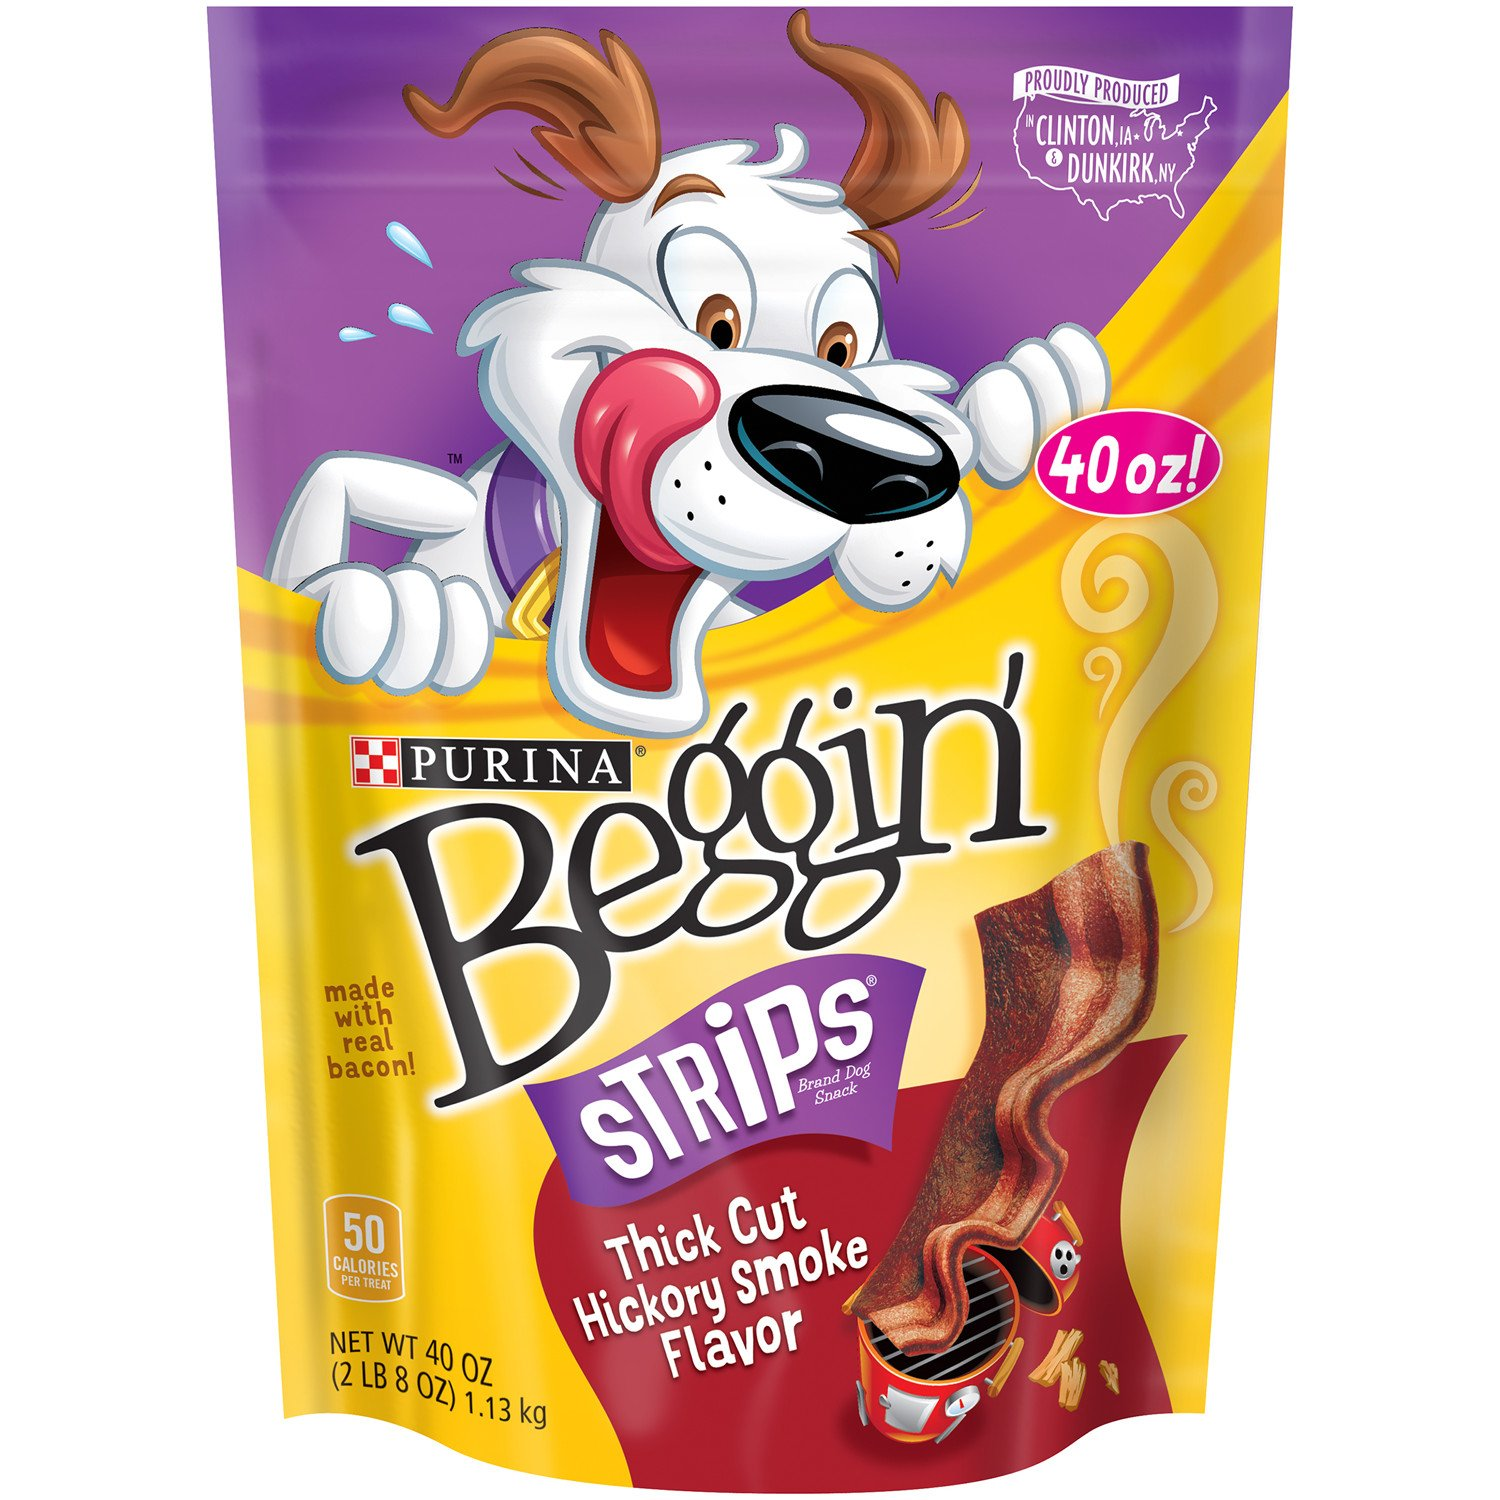 Purina Beggin Strips Thick Cut Hickory Smoke Flavor Dog Treats – 40 Oz. Pouch